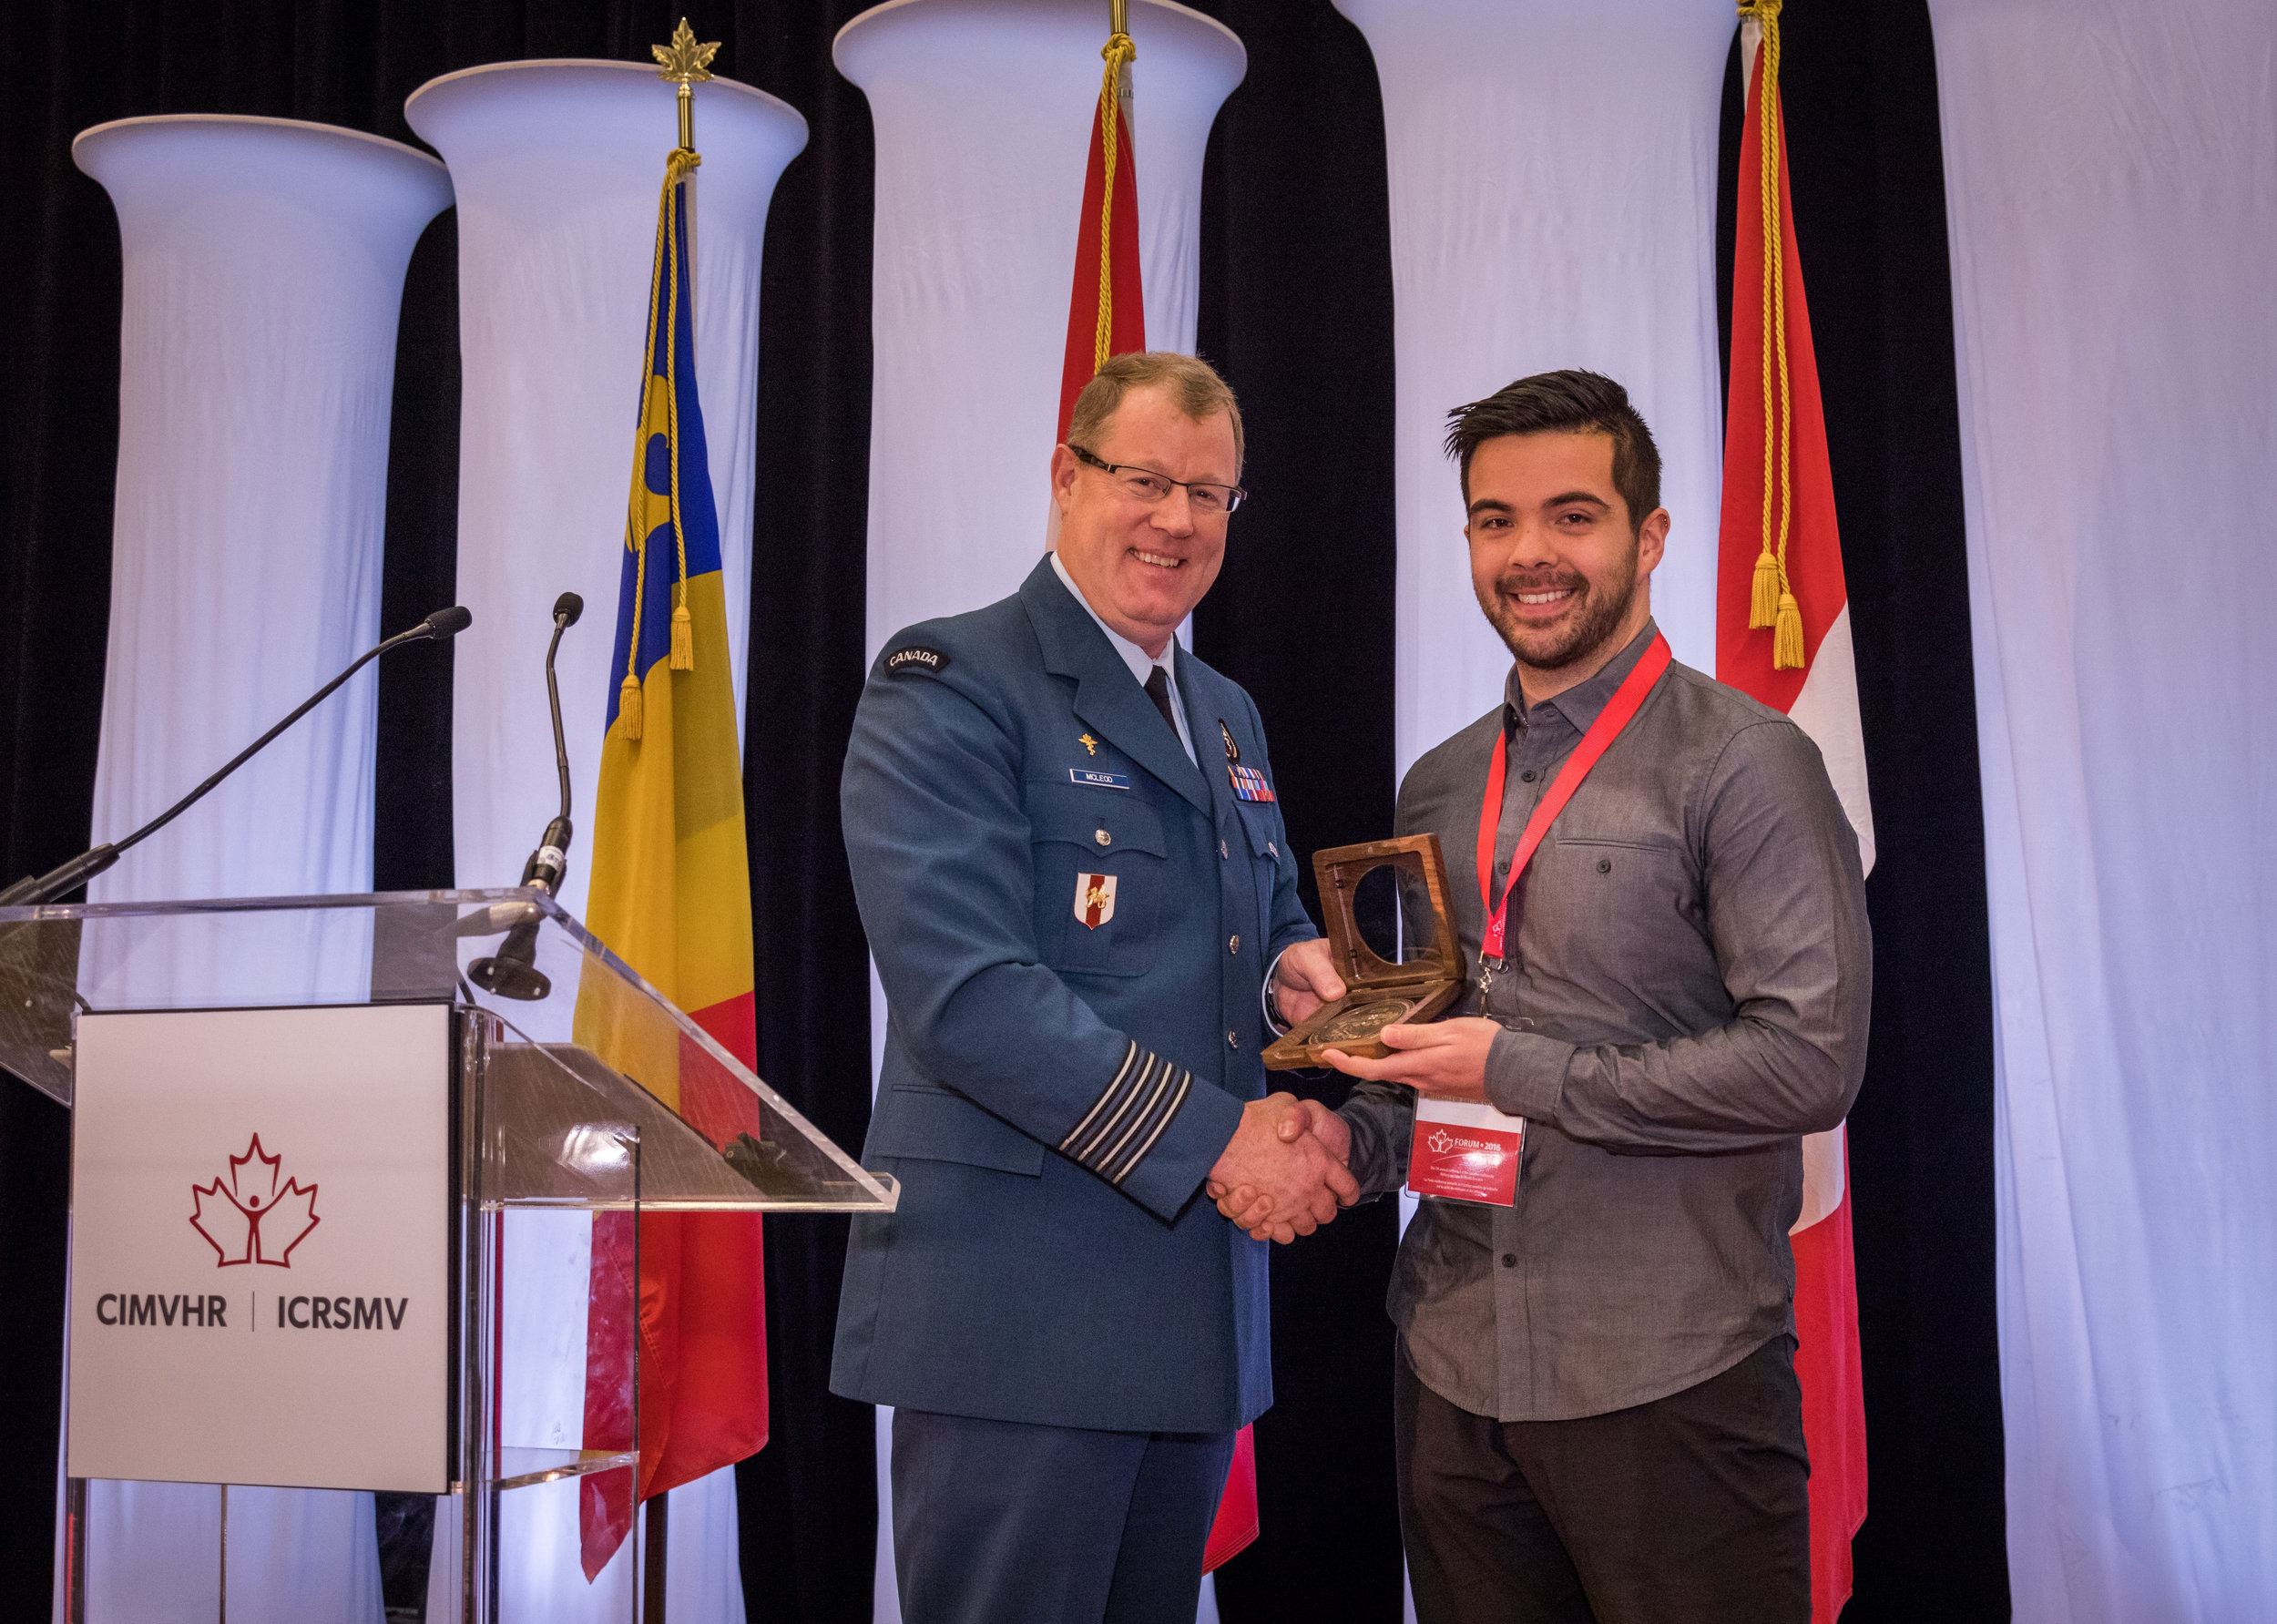 Colonel Scott McLeod, Deputy Surgeon General, presents the Banting Award to Mr. James Baylis accepting on behalf of Dr. Christian Kastrup, professor at UBC, for his research on self-propelled particles.